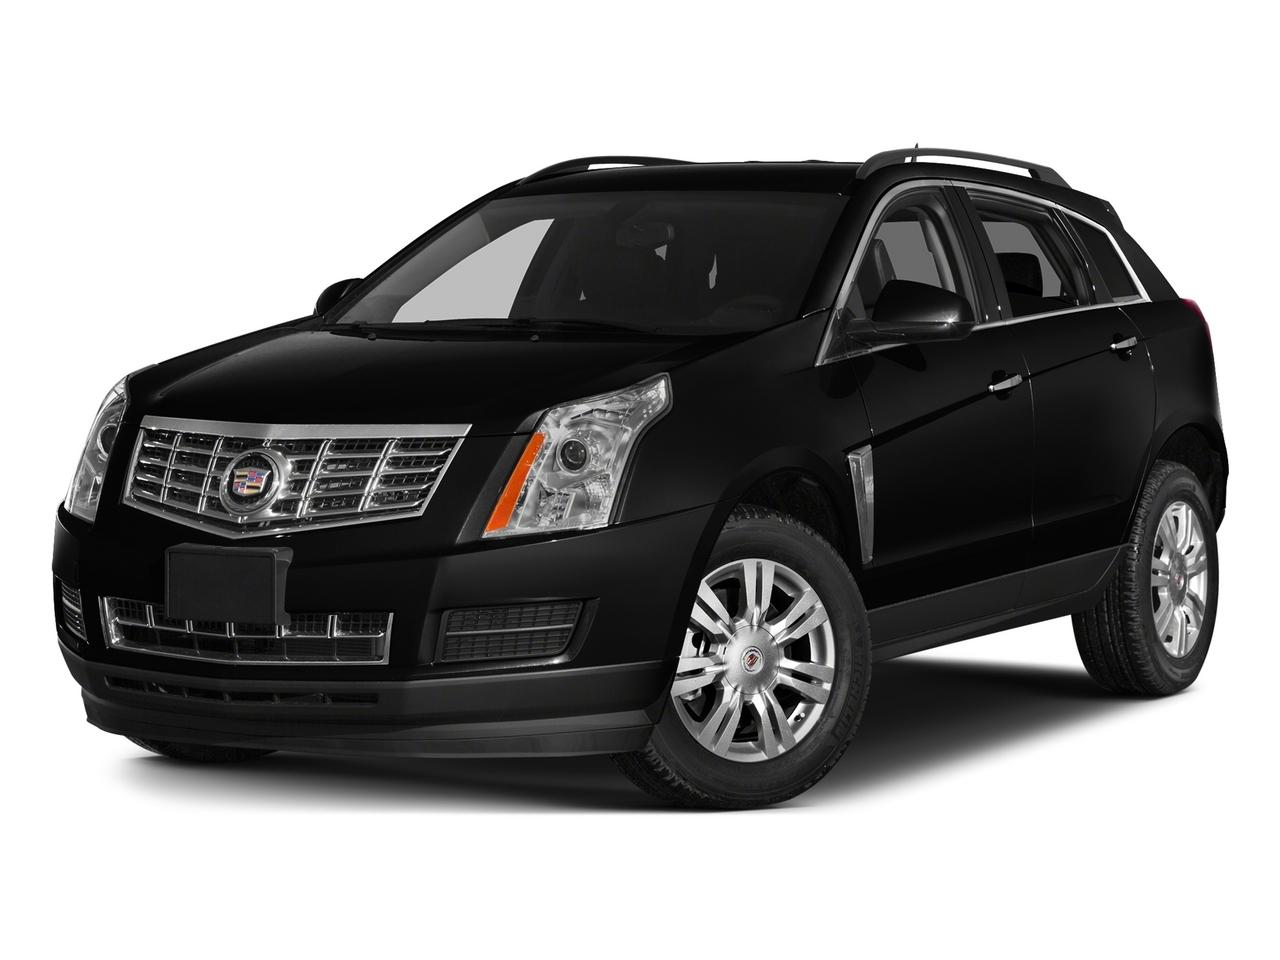 2015 Cadillac SRX Vehicle Photo in Killeen, TX 76541